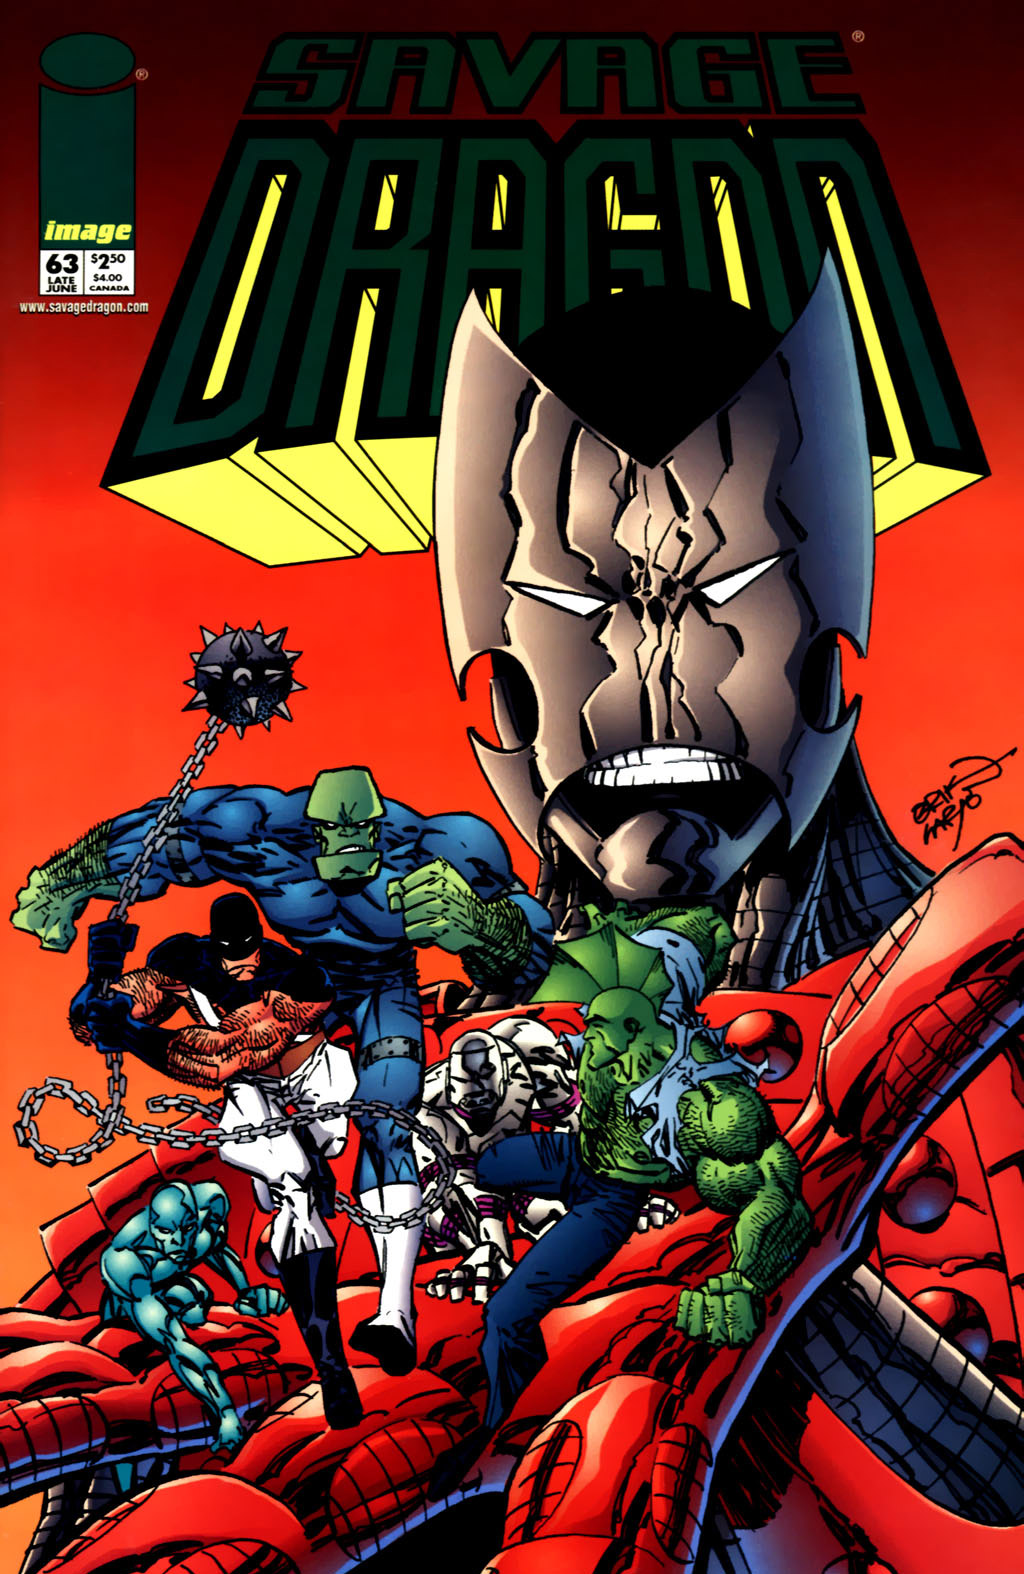 Cover Savage Dragon Vol.2 #63